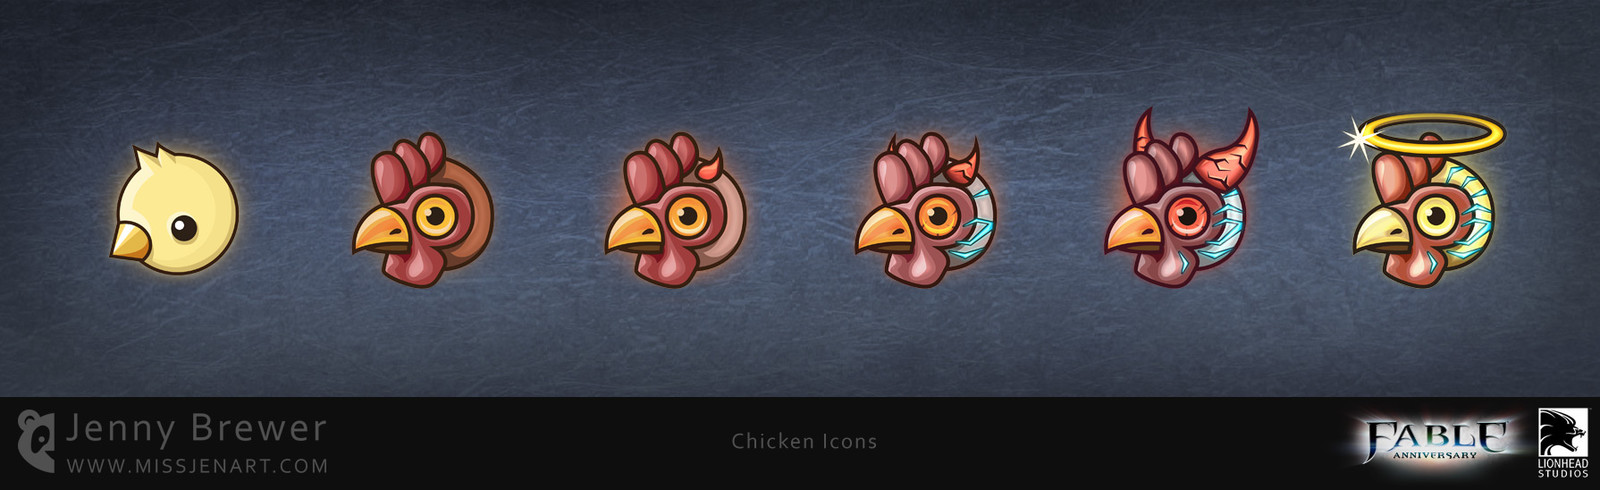 Some extra icons were required for the PC release of the game, these chicken themed icons were used as badges on the Steam platform.